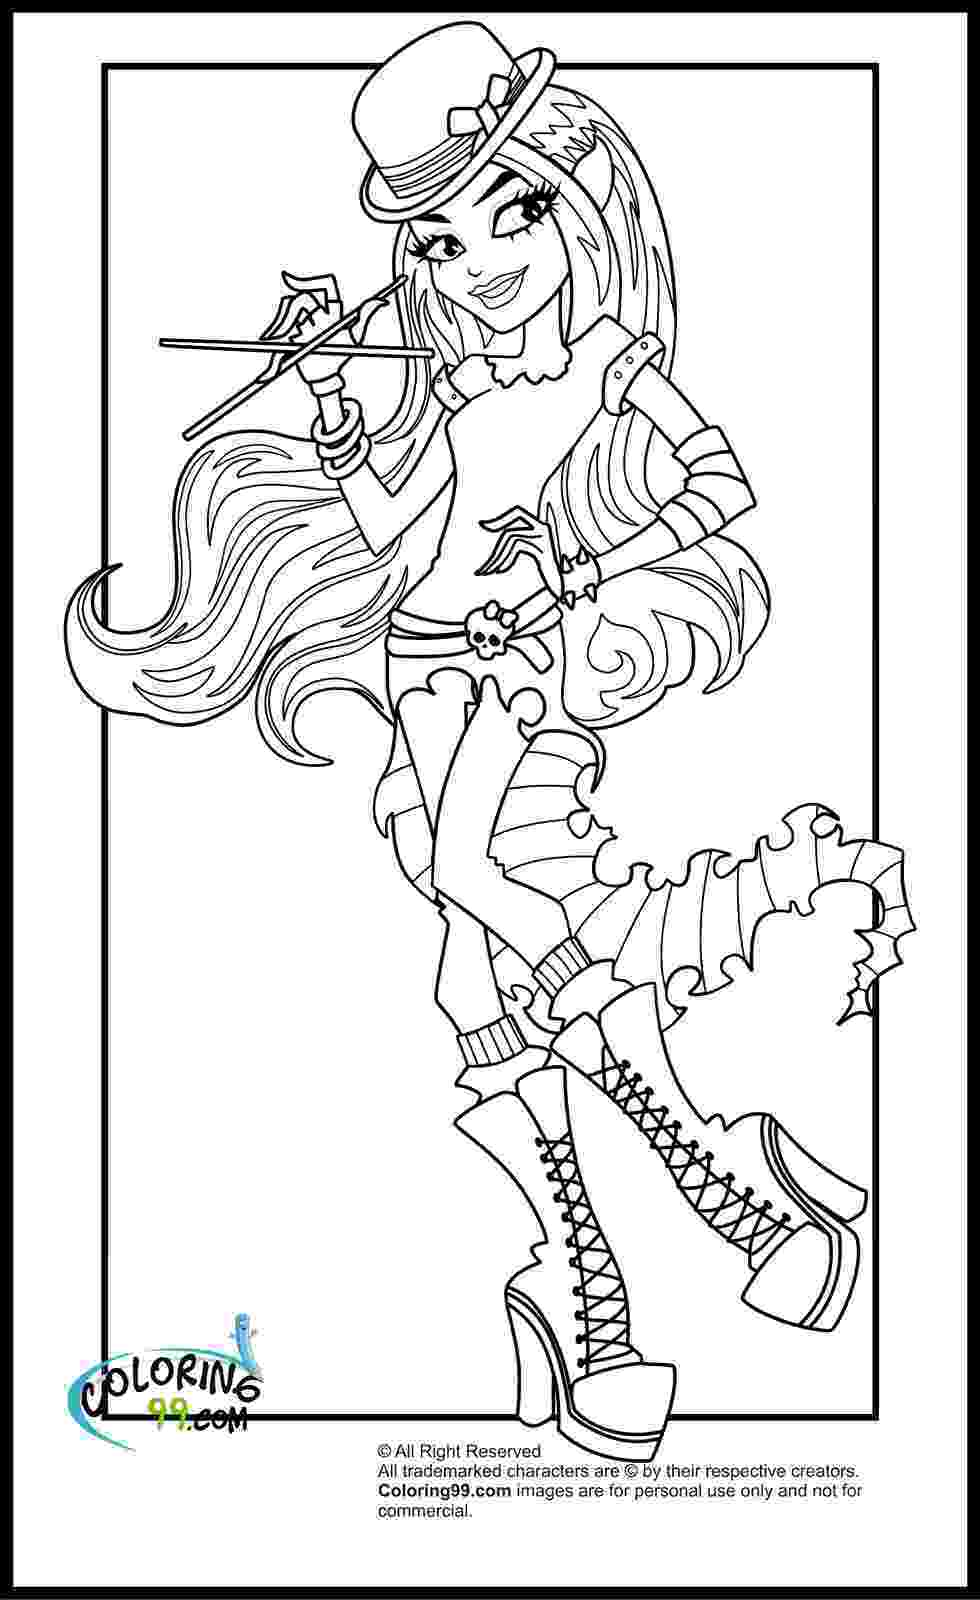 monster high pages to color monster high coloring pages 360coloringpages high pages color monster to